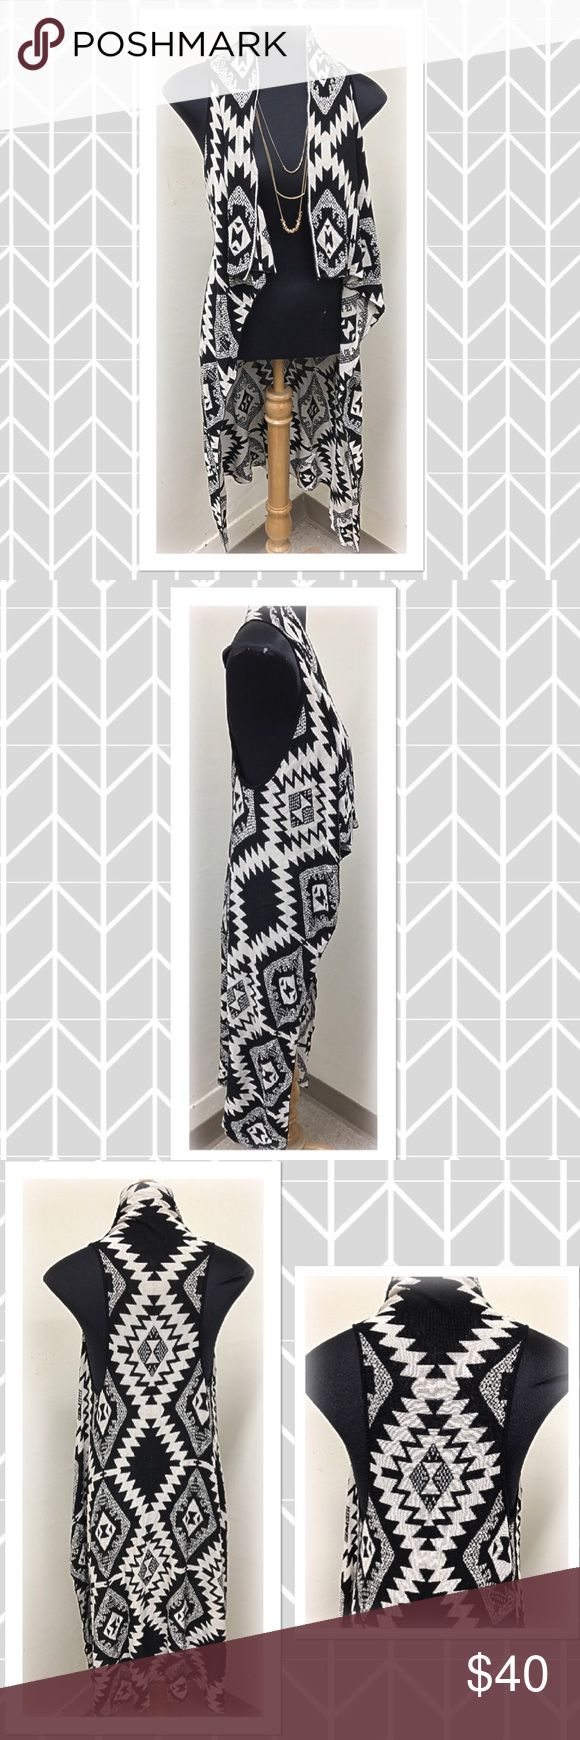 Black and white print long sleeveless vest Beautiful black and white tribal print long sleeveless vest with open draped front. This vest is so soft and comfy and just beautiful. Purchased here on Posh but never worn, brand new without tags. Material content is 100% rayon. Timing Jackets & Coats Vests